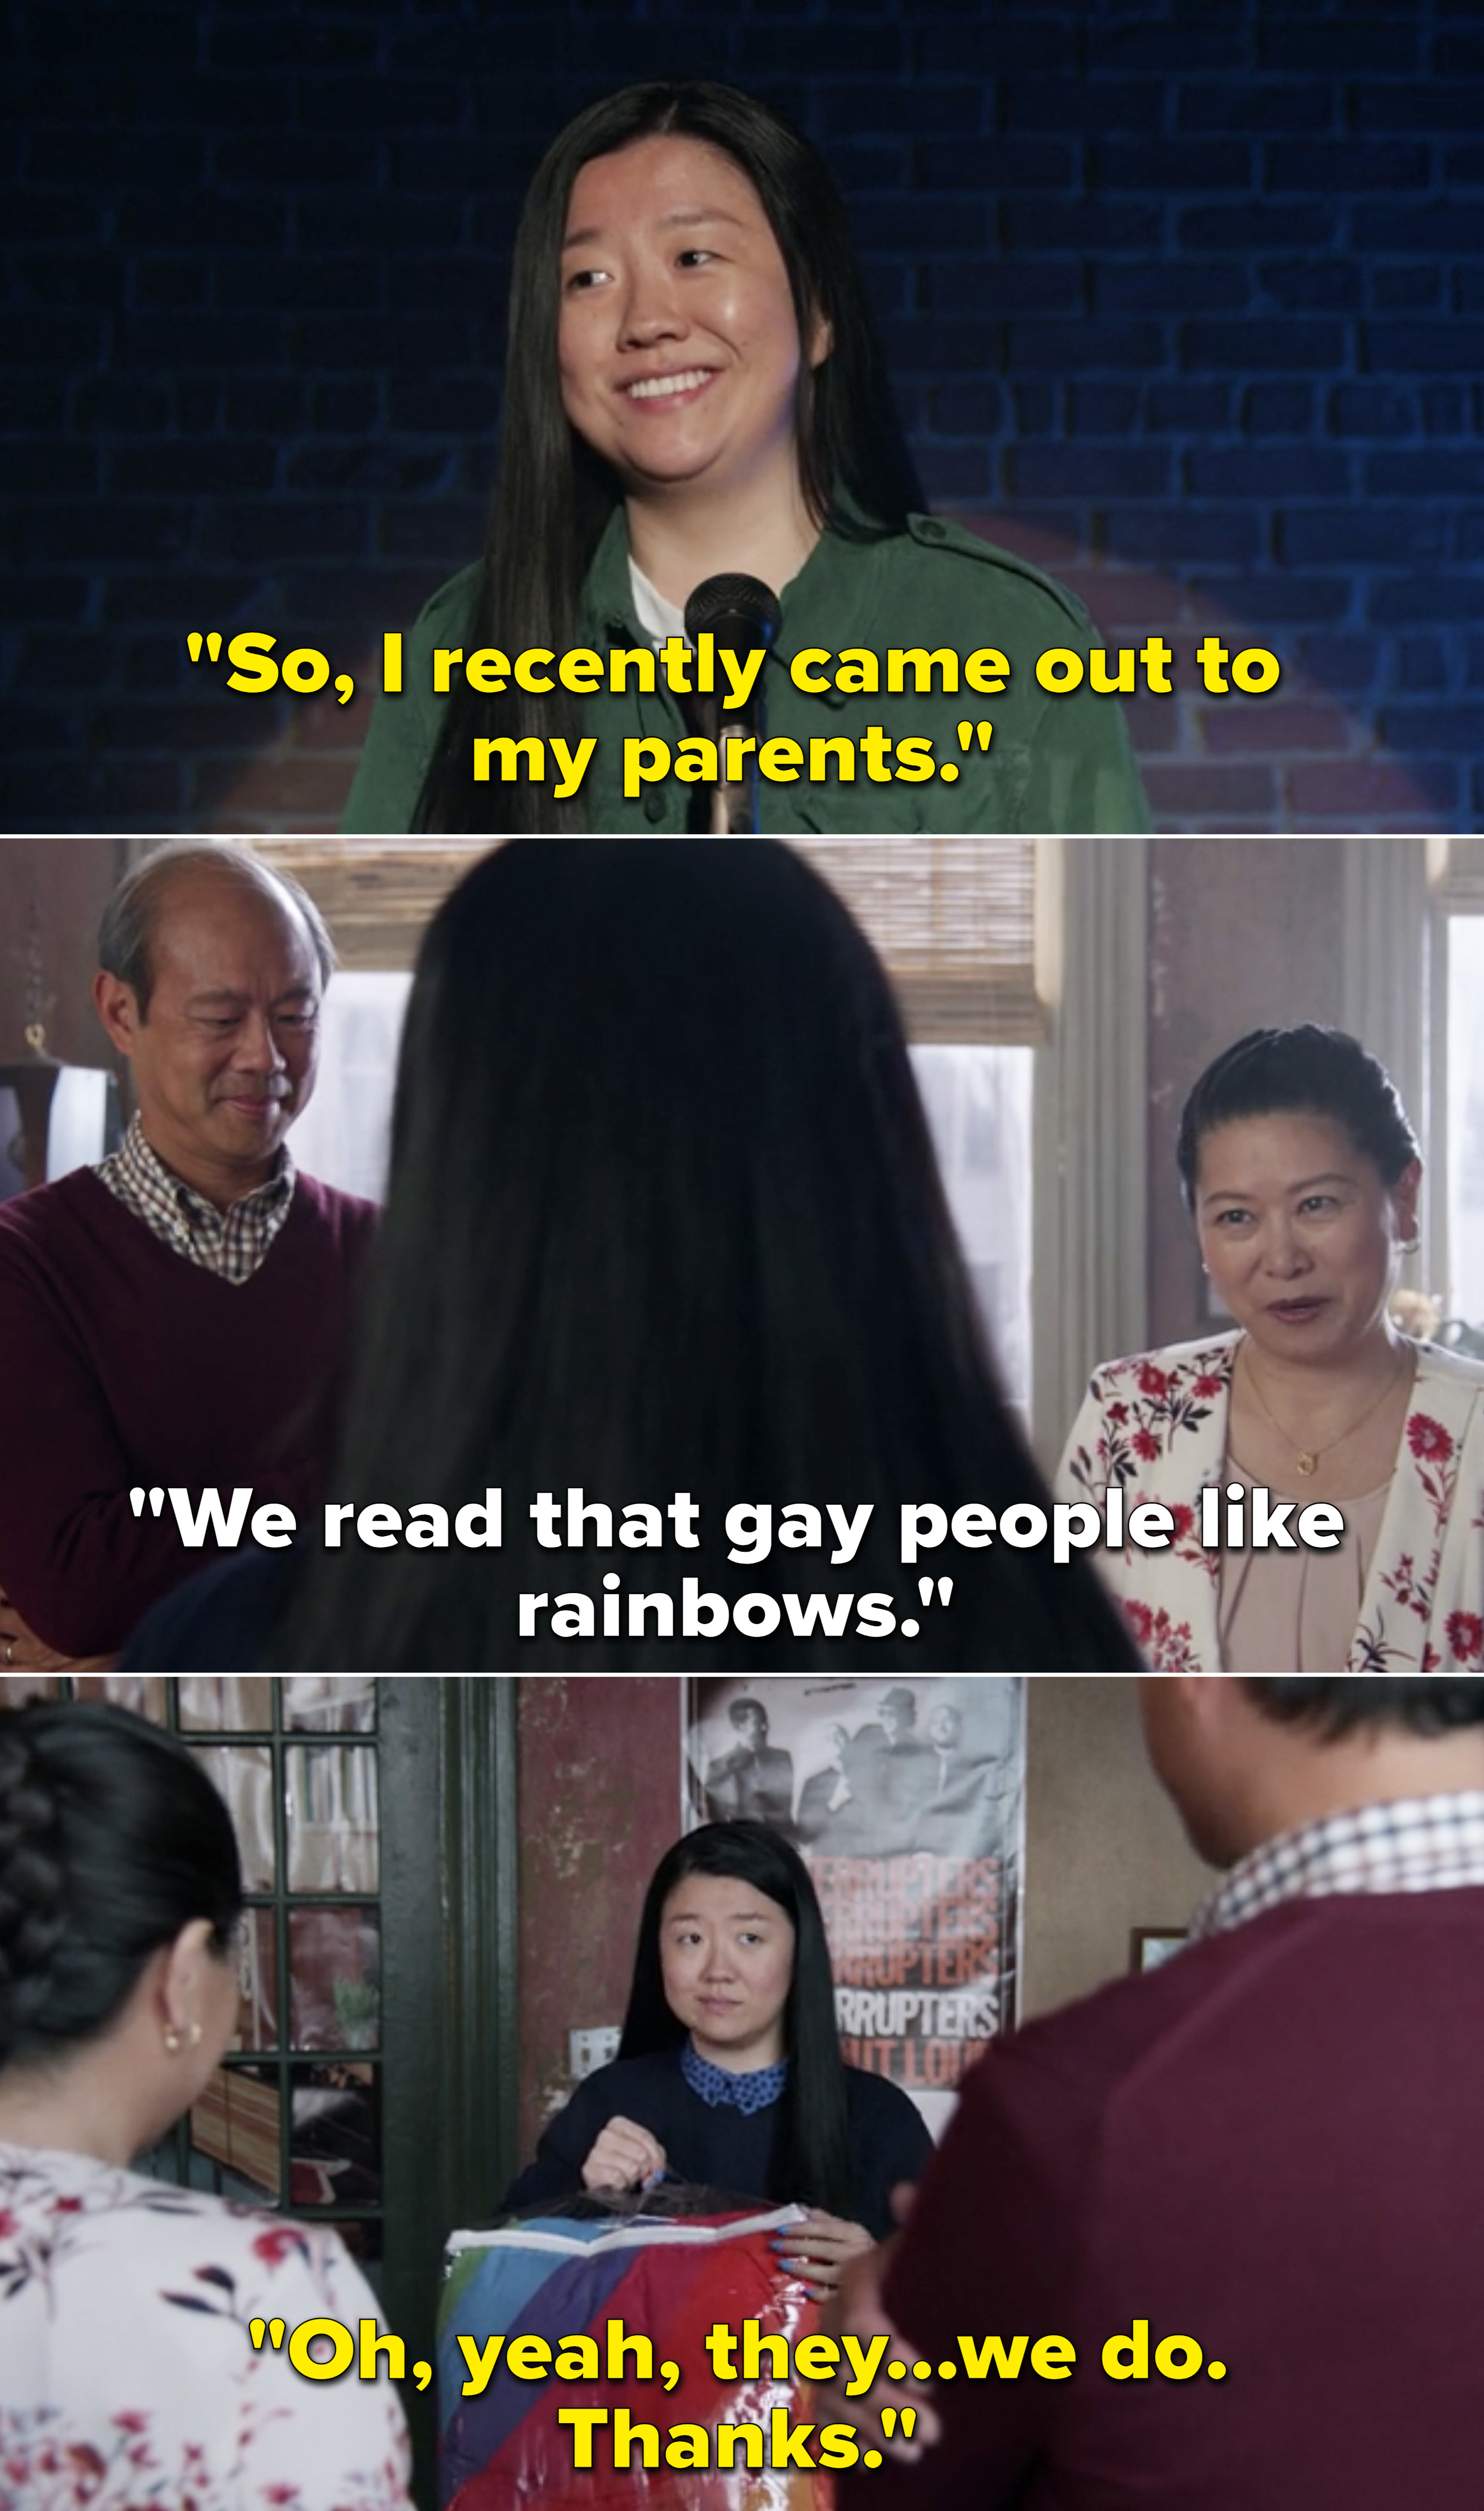 Alice talking about how she came out to her parents and then they bought her a rainbow blanket